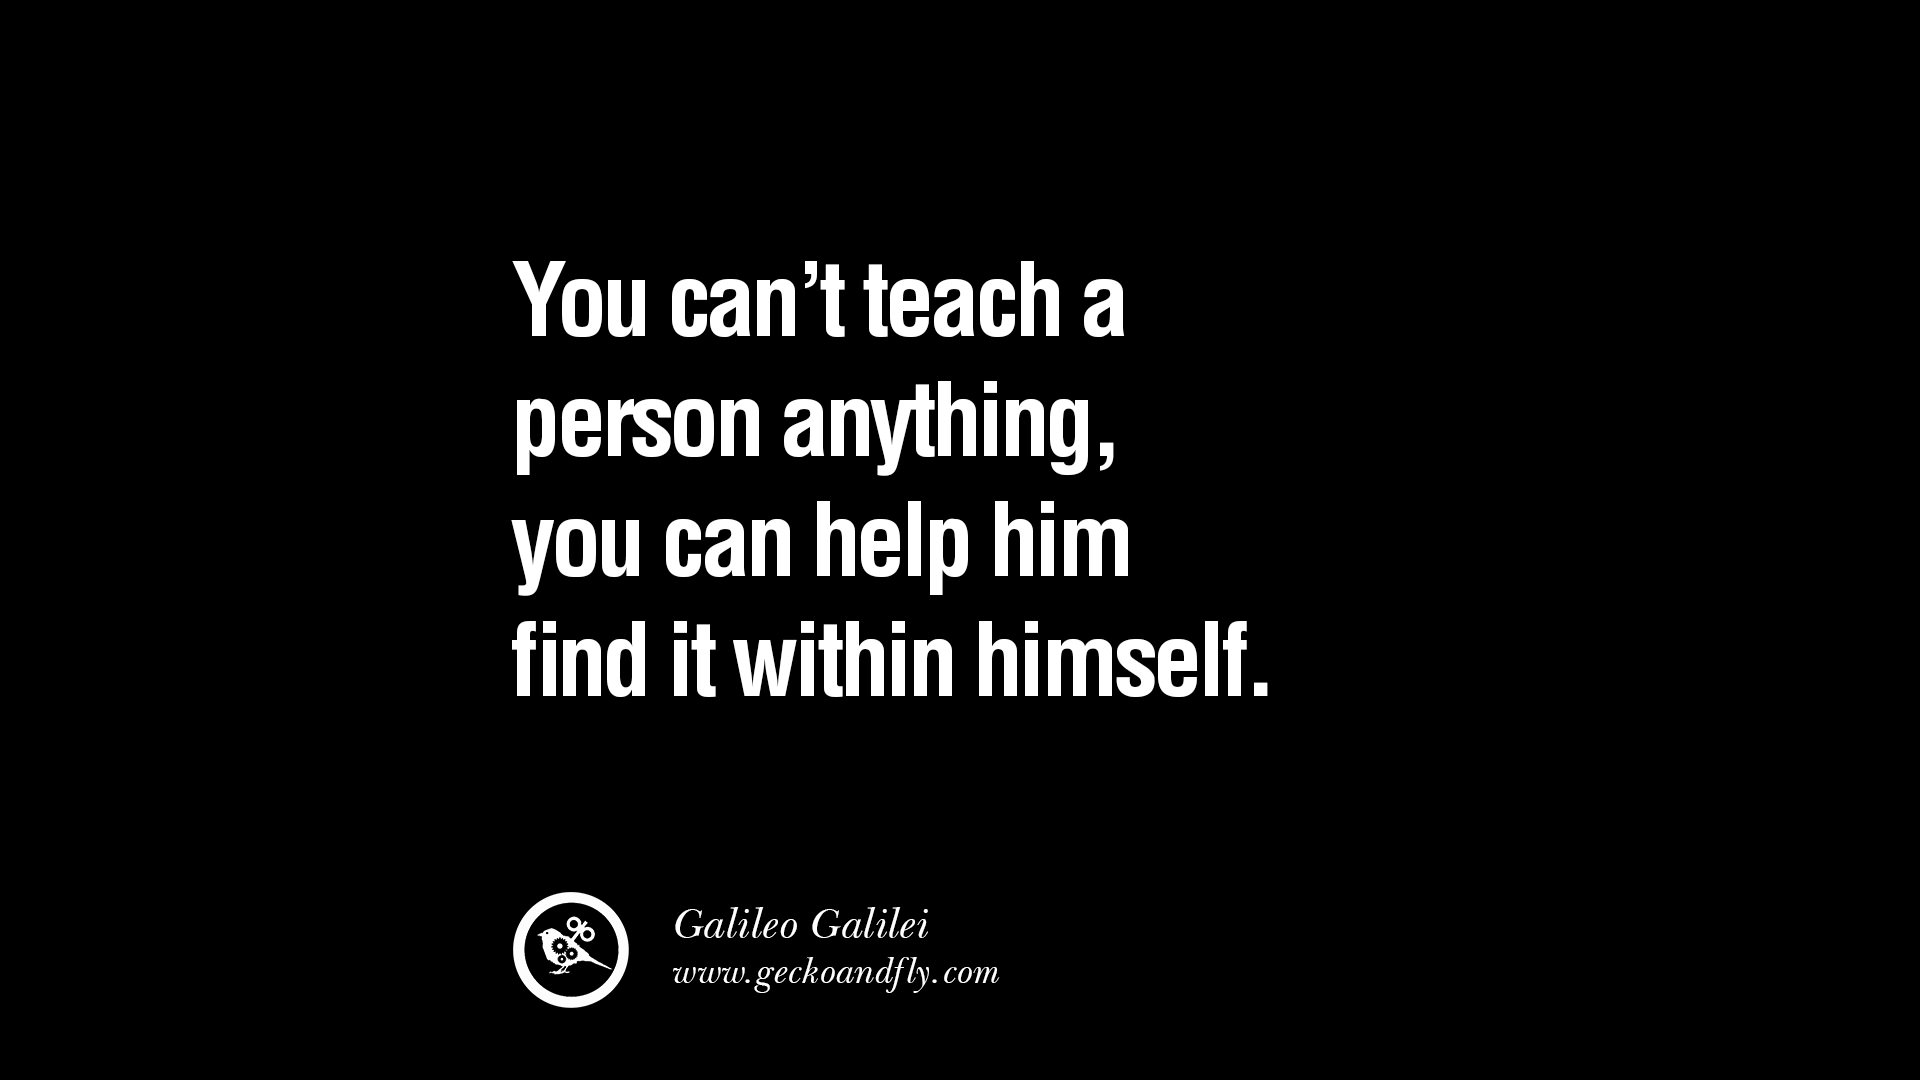 Teach Sayings you can't teach a person anything you can help him find it within himself